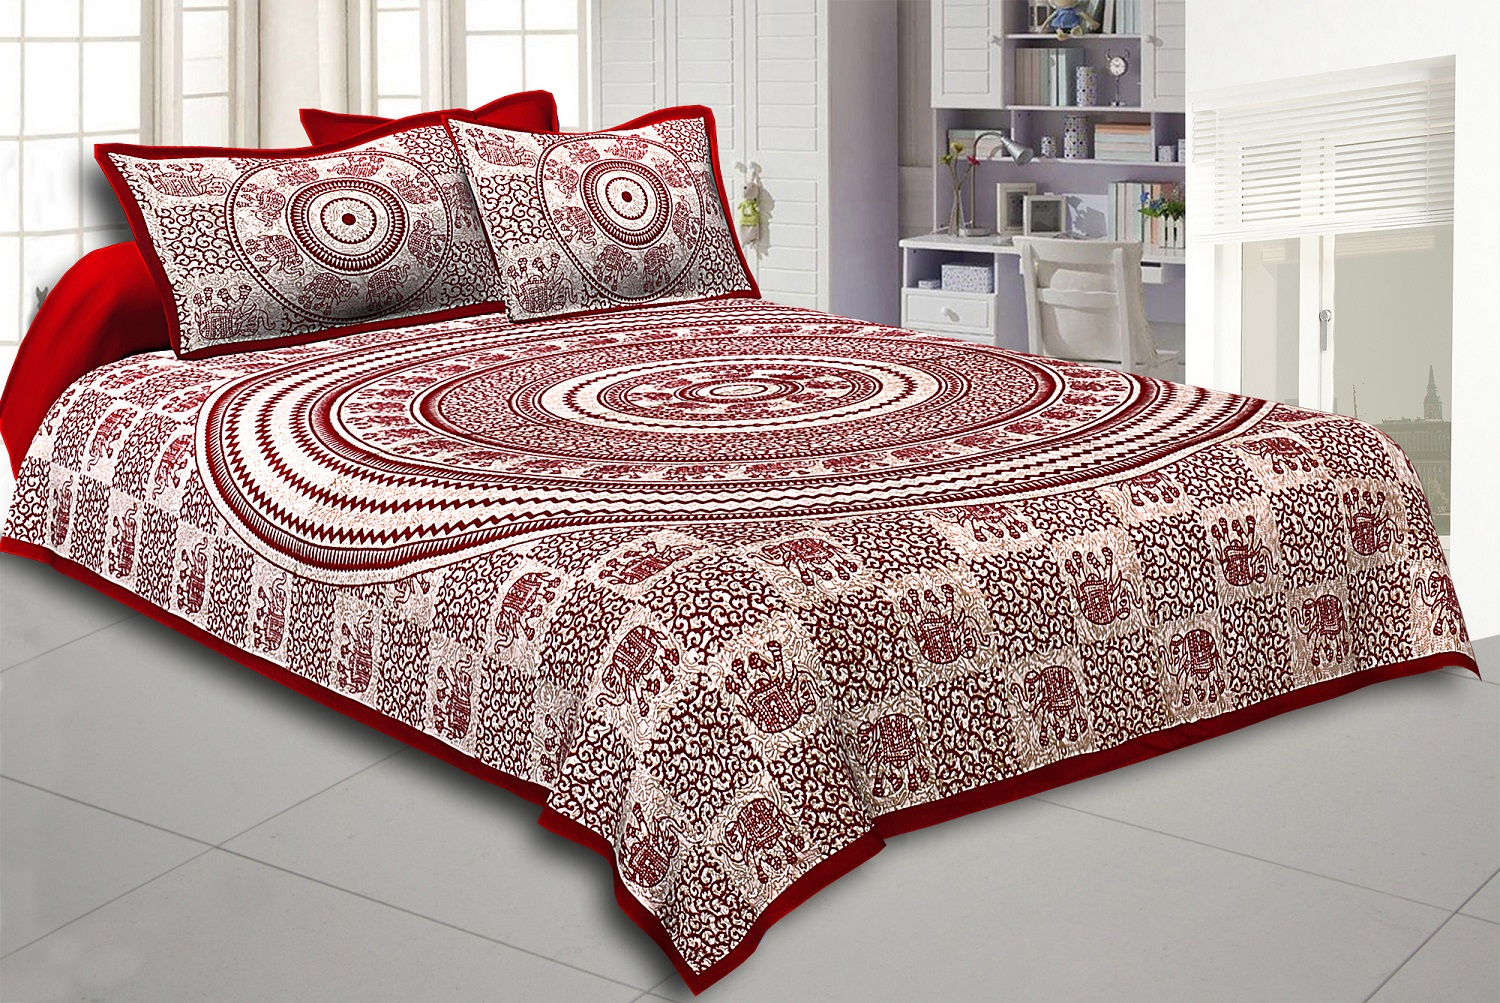 Maroon Border Cream Base Mandal   With Elephant Print Super Fine Cotton Bed Sheet